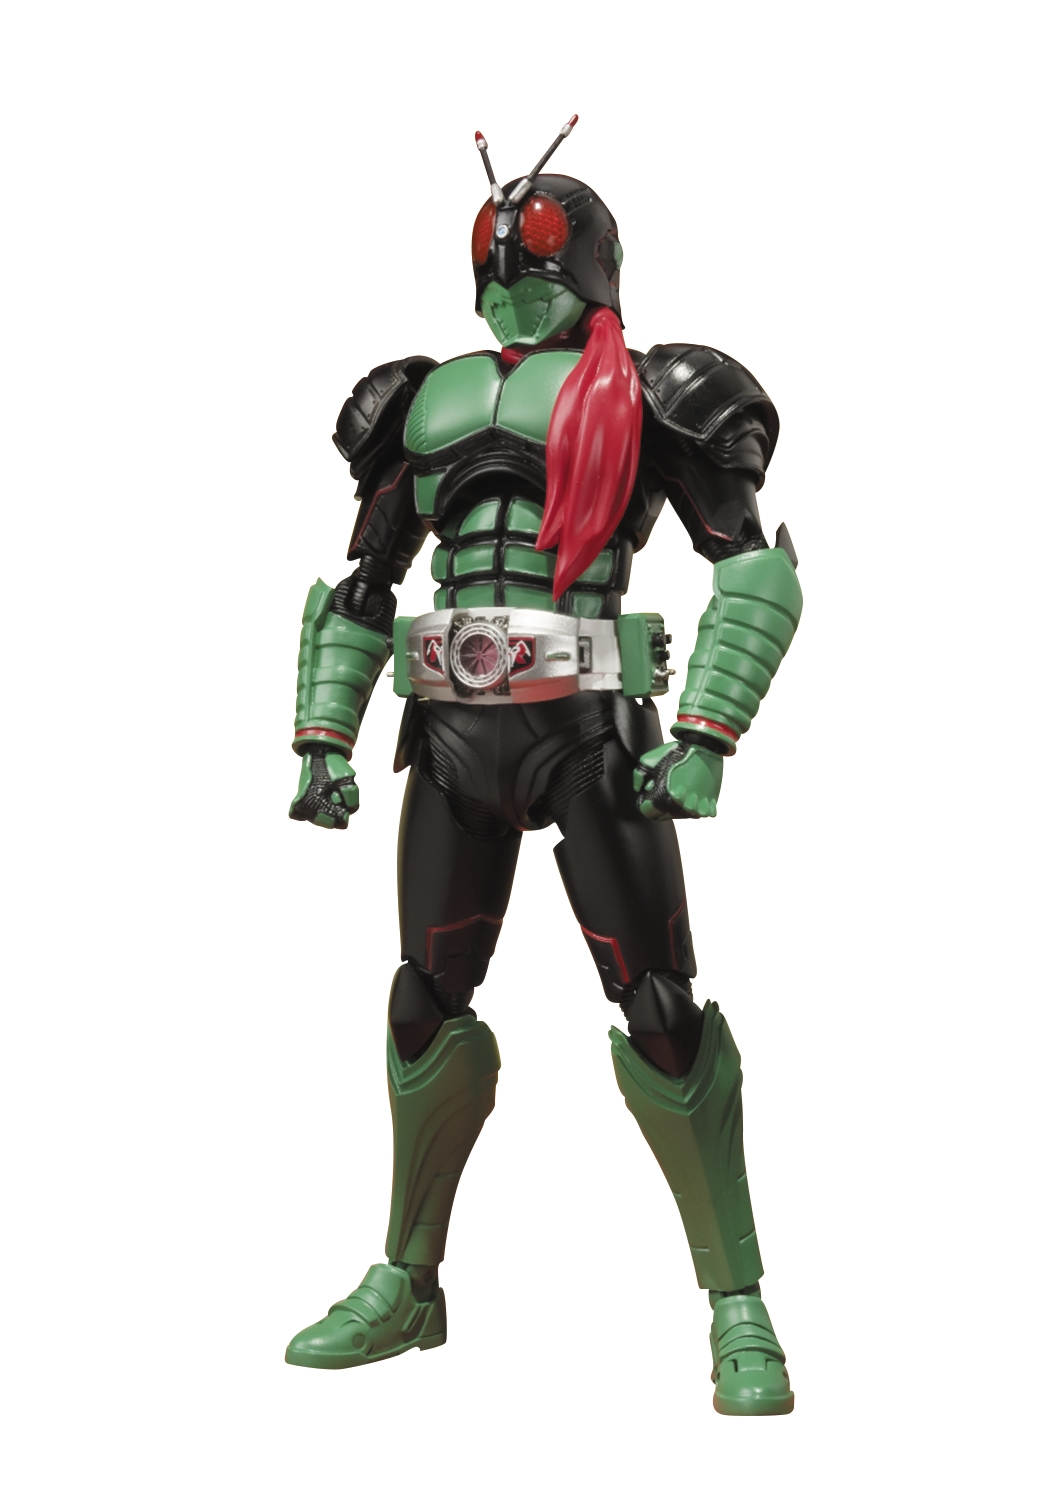 Kamen Rider No.1 (S.H.Figuarts Action Figure)